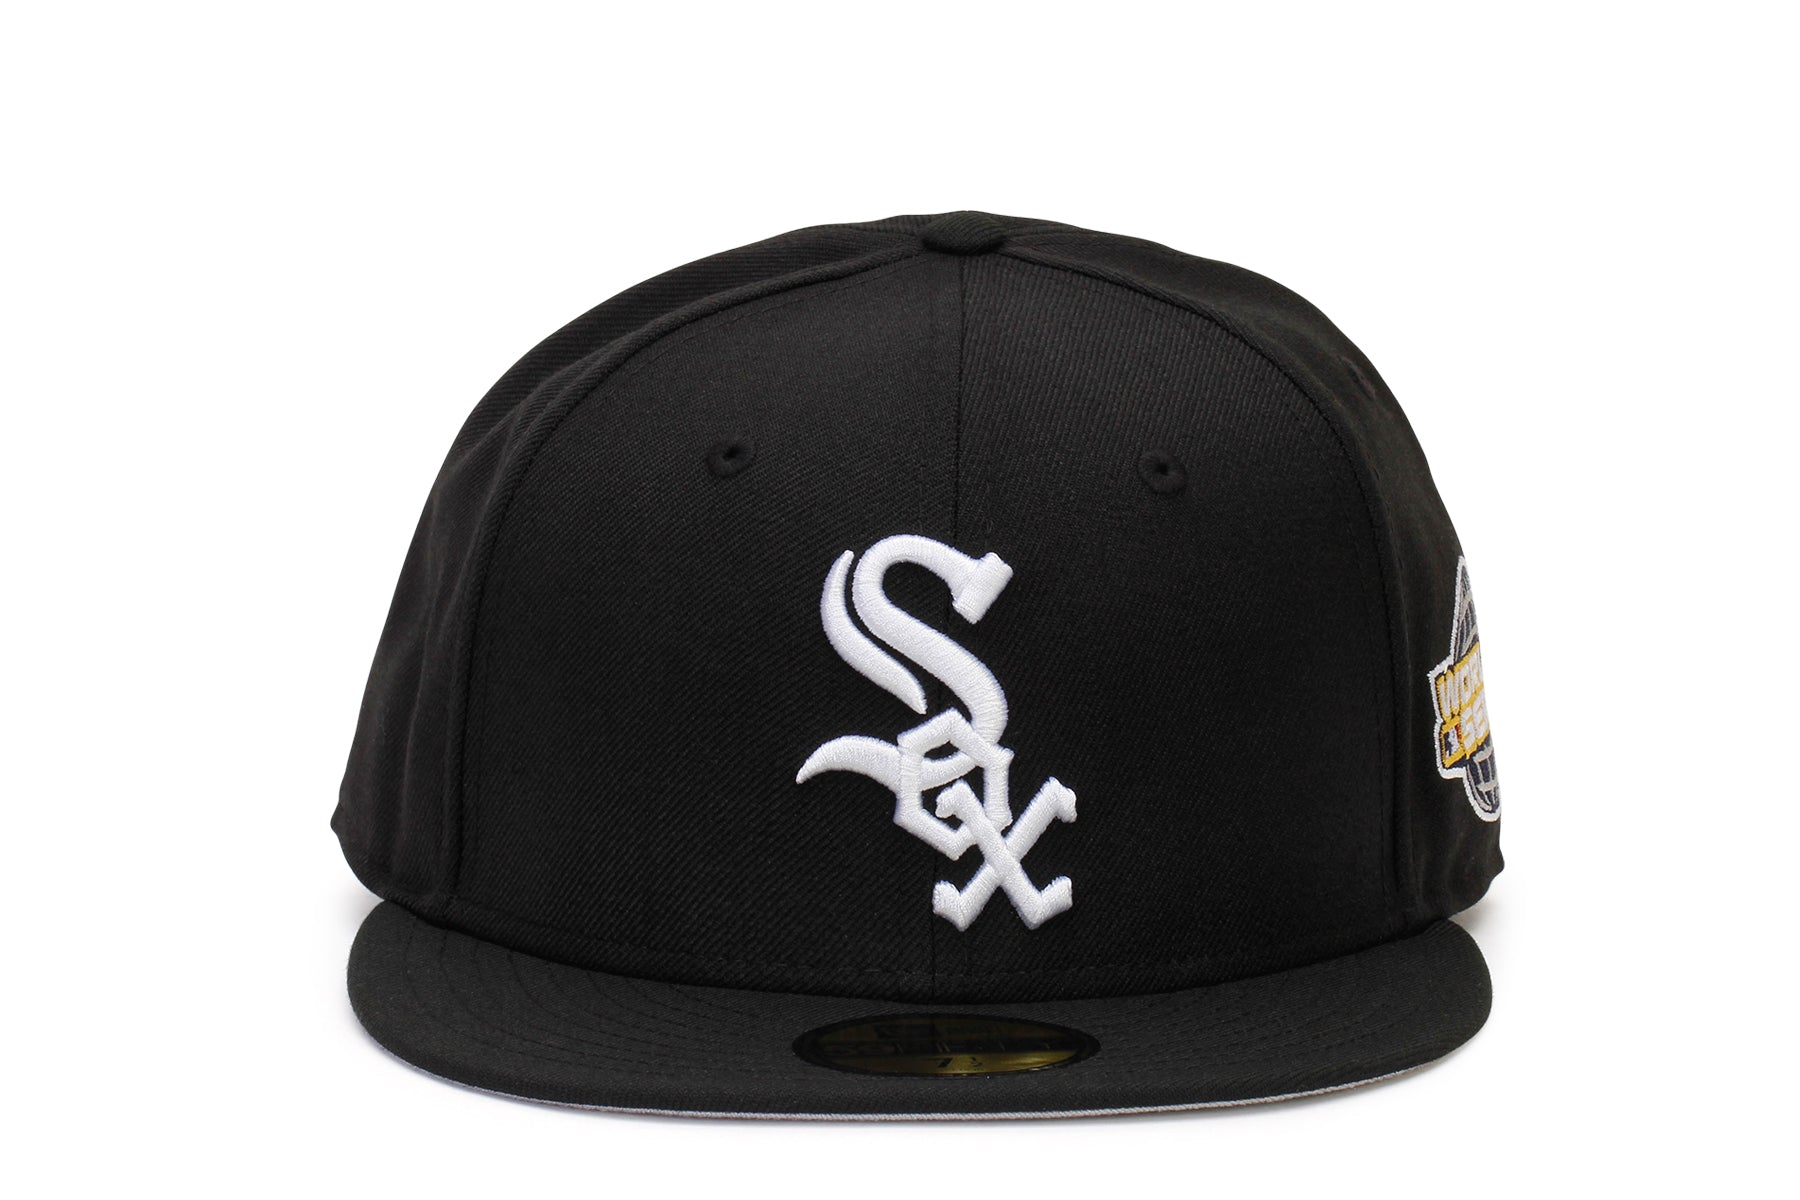 59FIFTY Chicago White Sox WS 2005